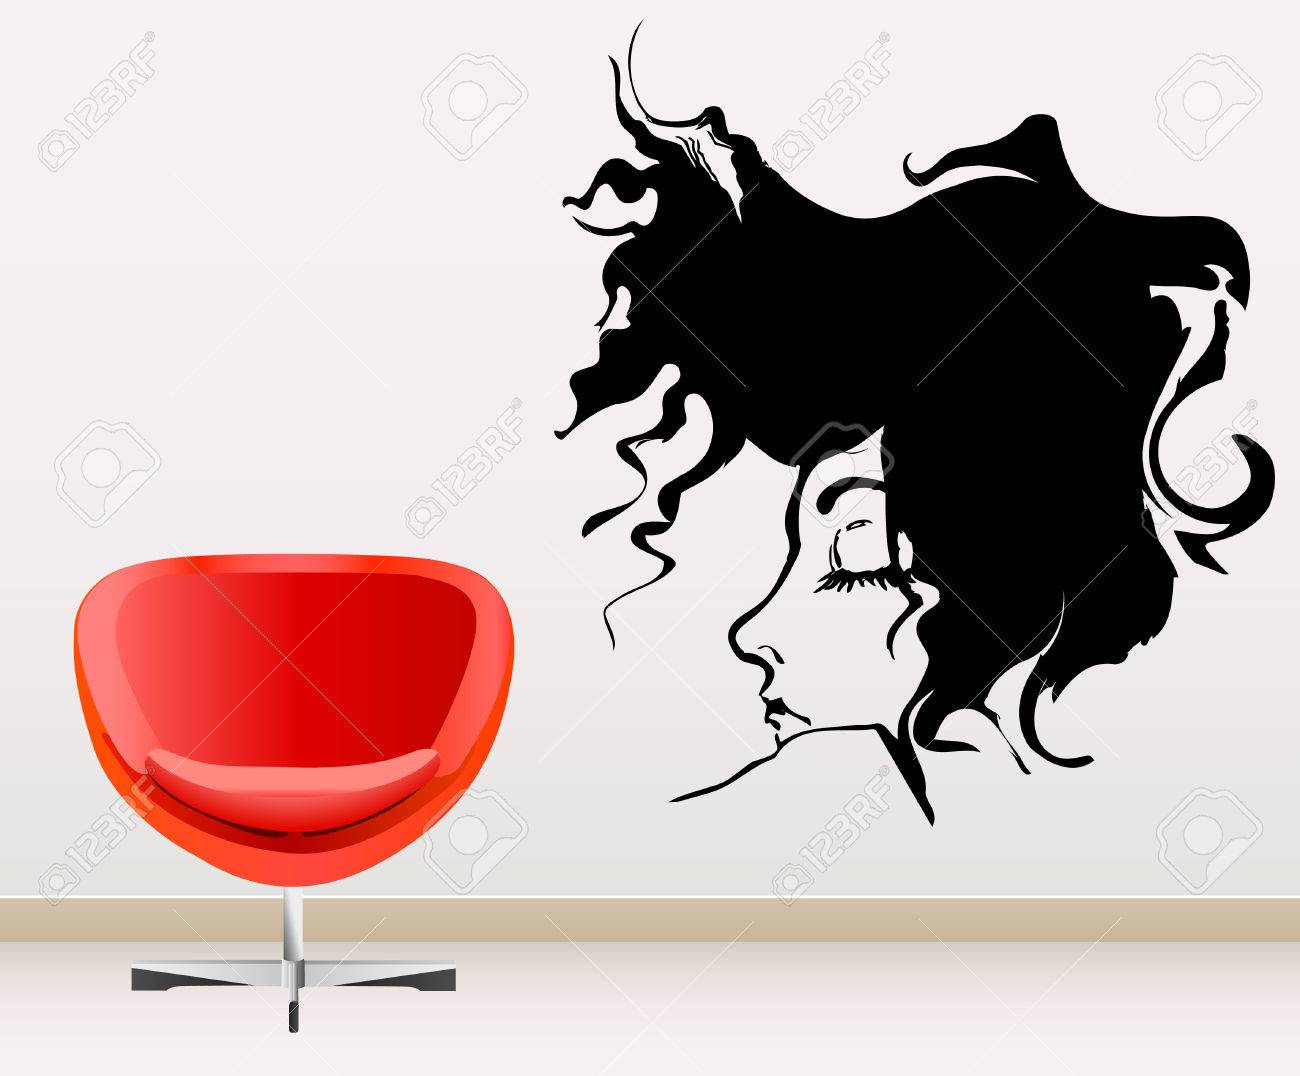 wall decoration Stock Vector - 9060142